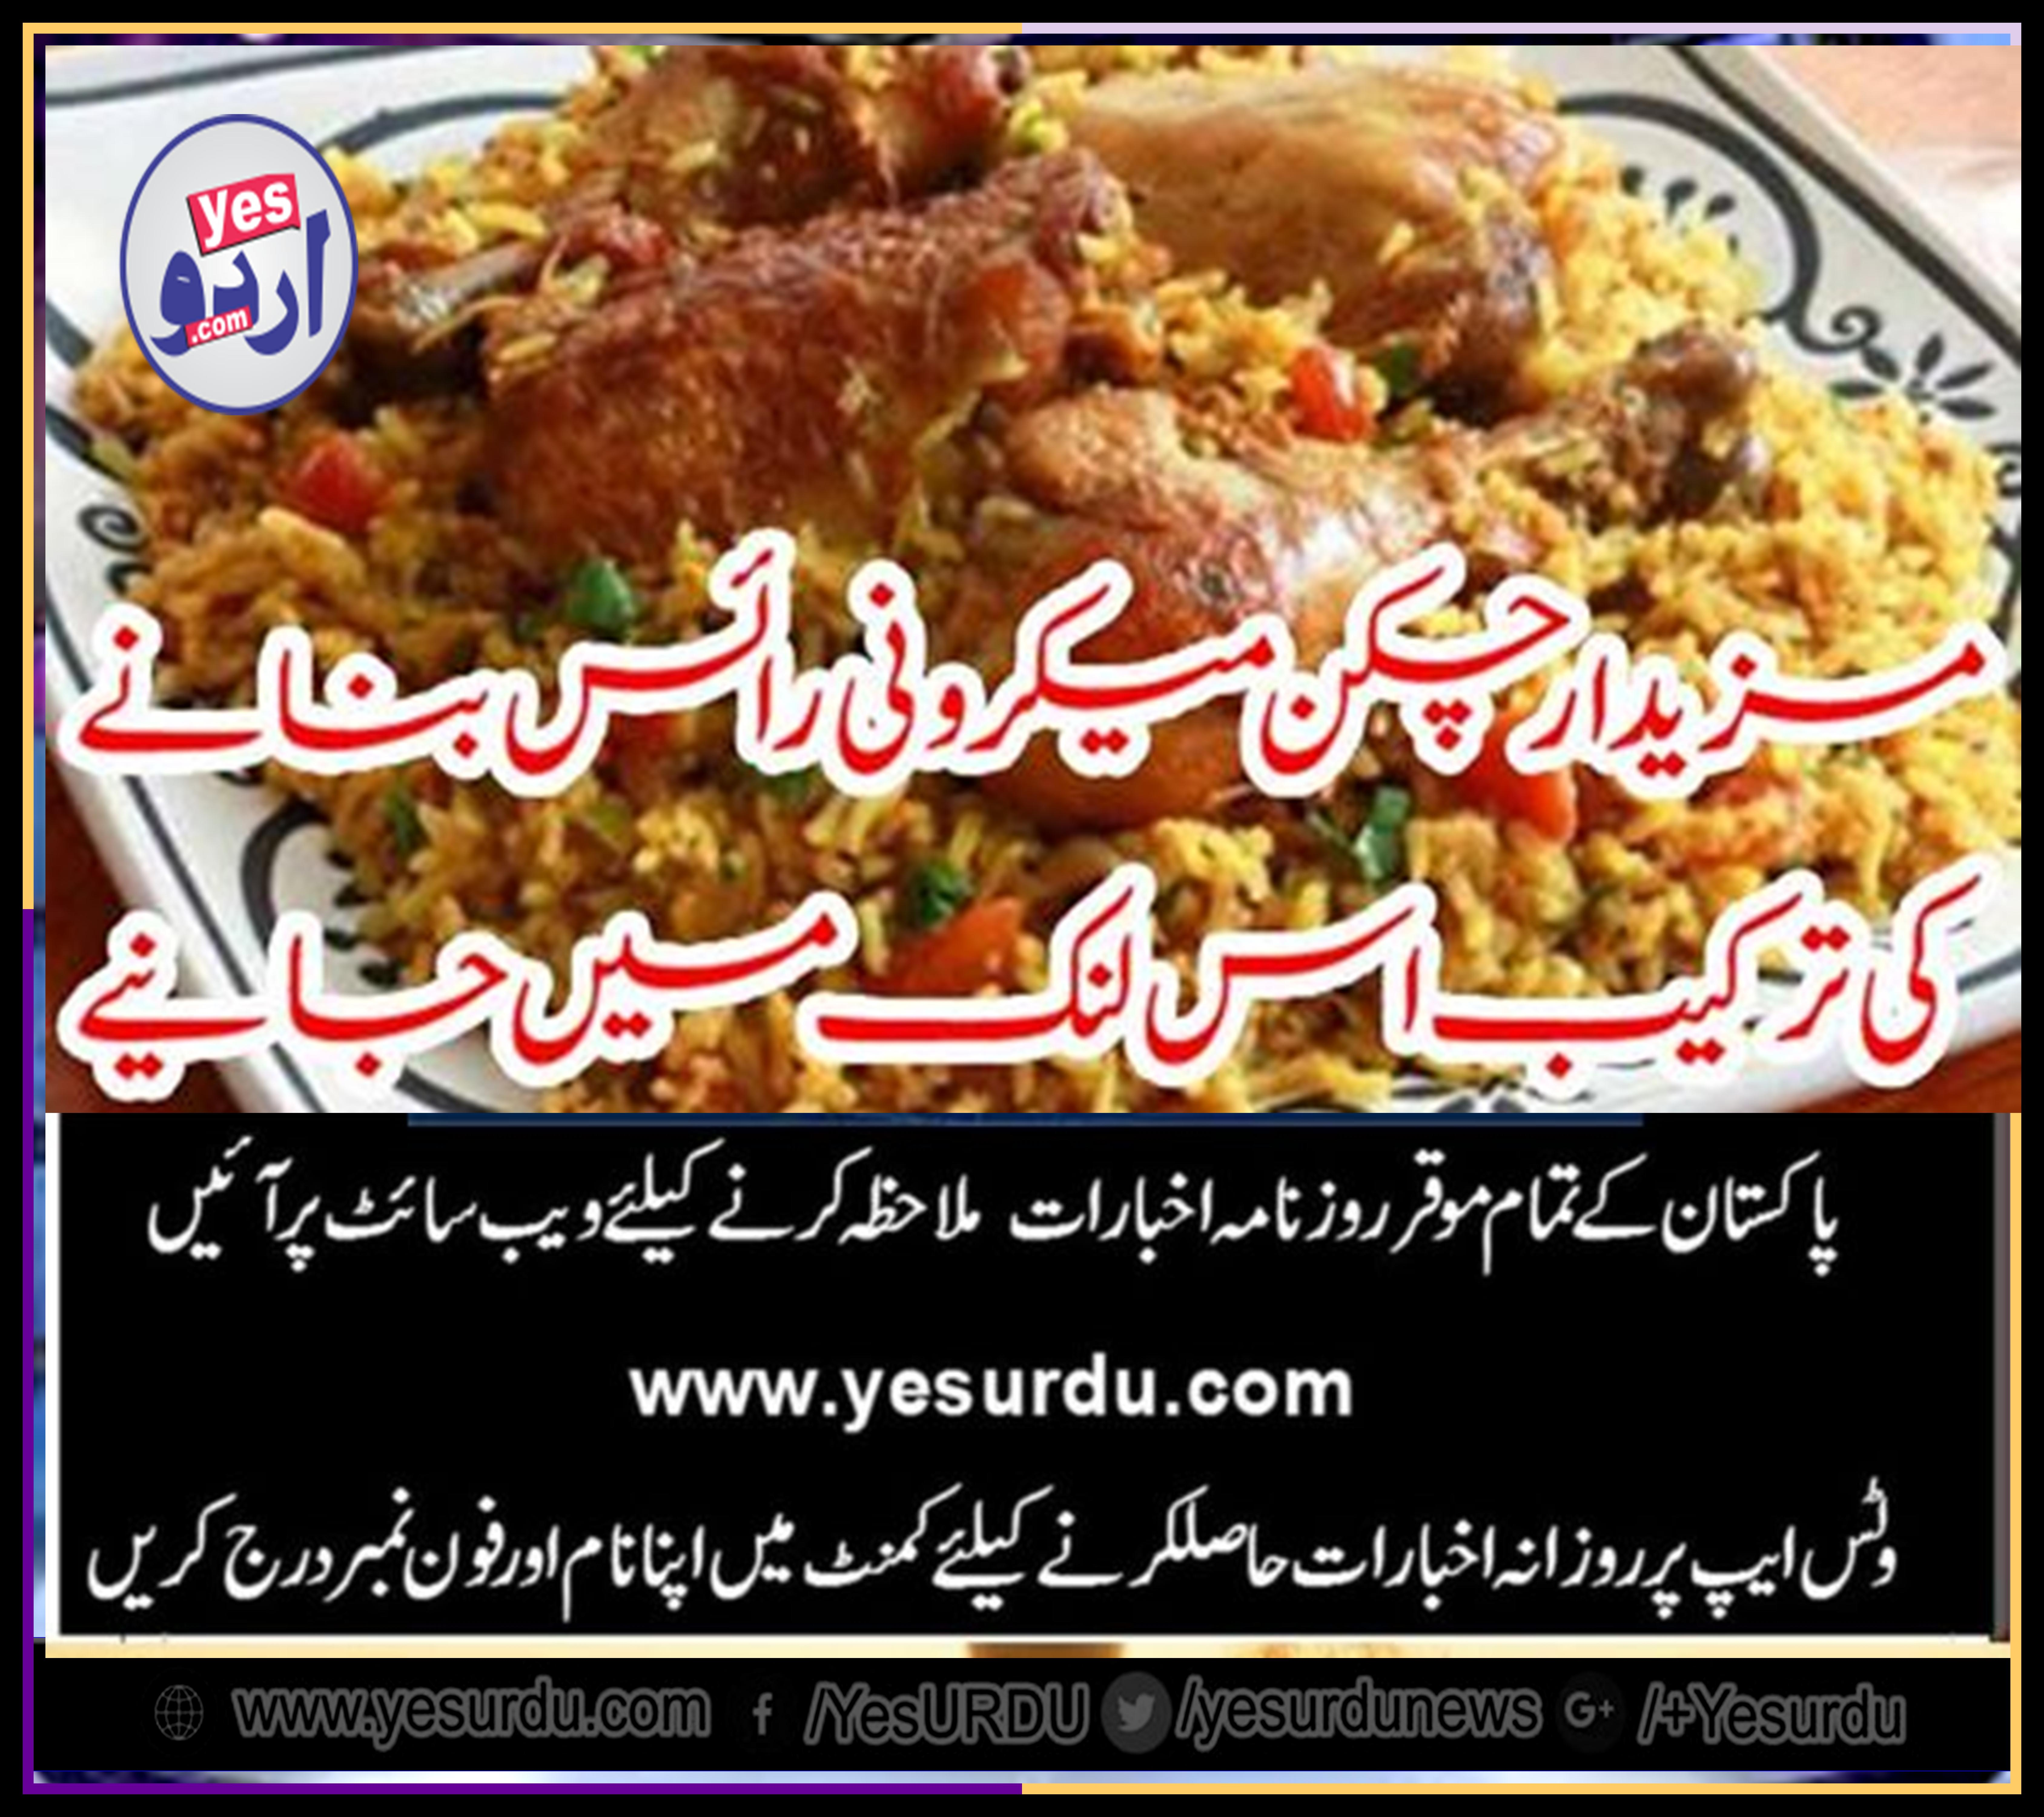 tasty, chicken, ma-cronies, and, rice, full, recipe, at, yes urdu, nes,